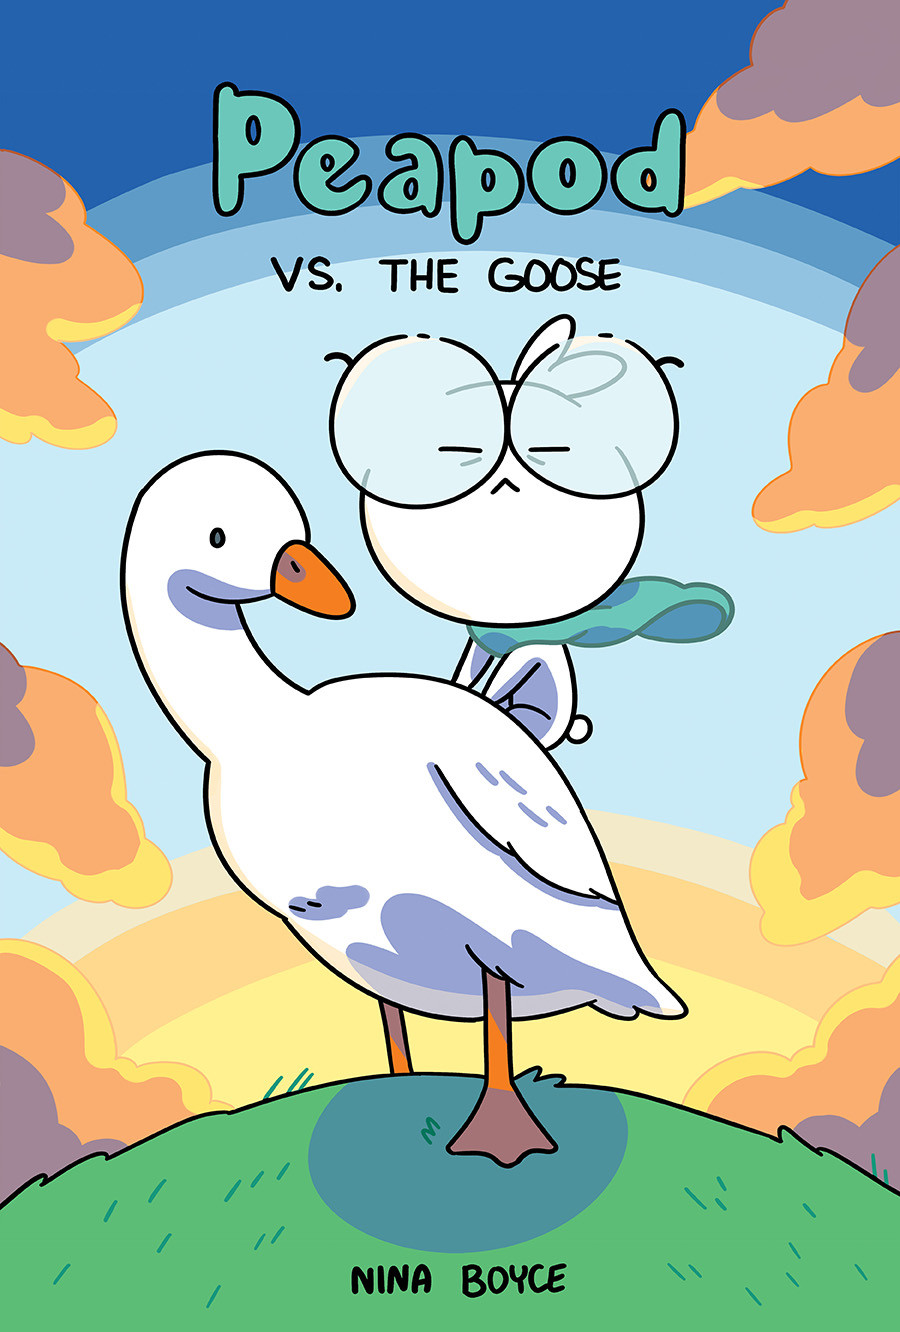 peapod vs the goose by nina boyce